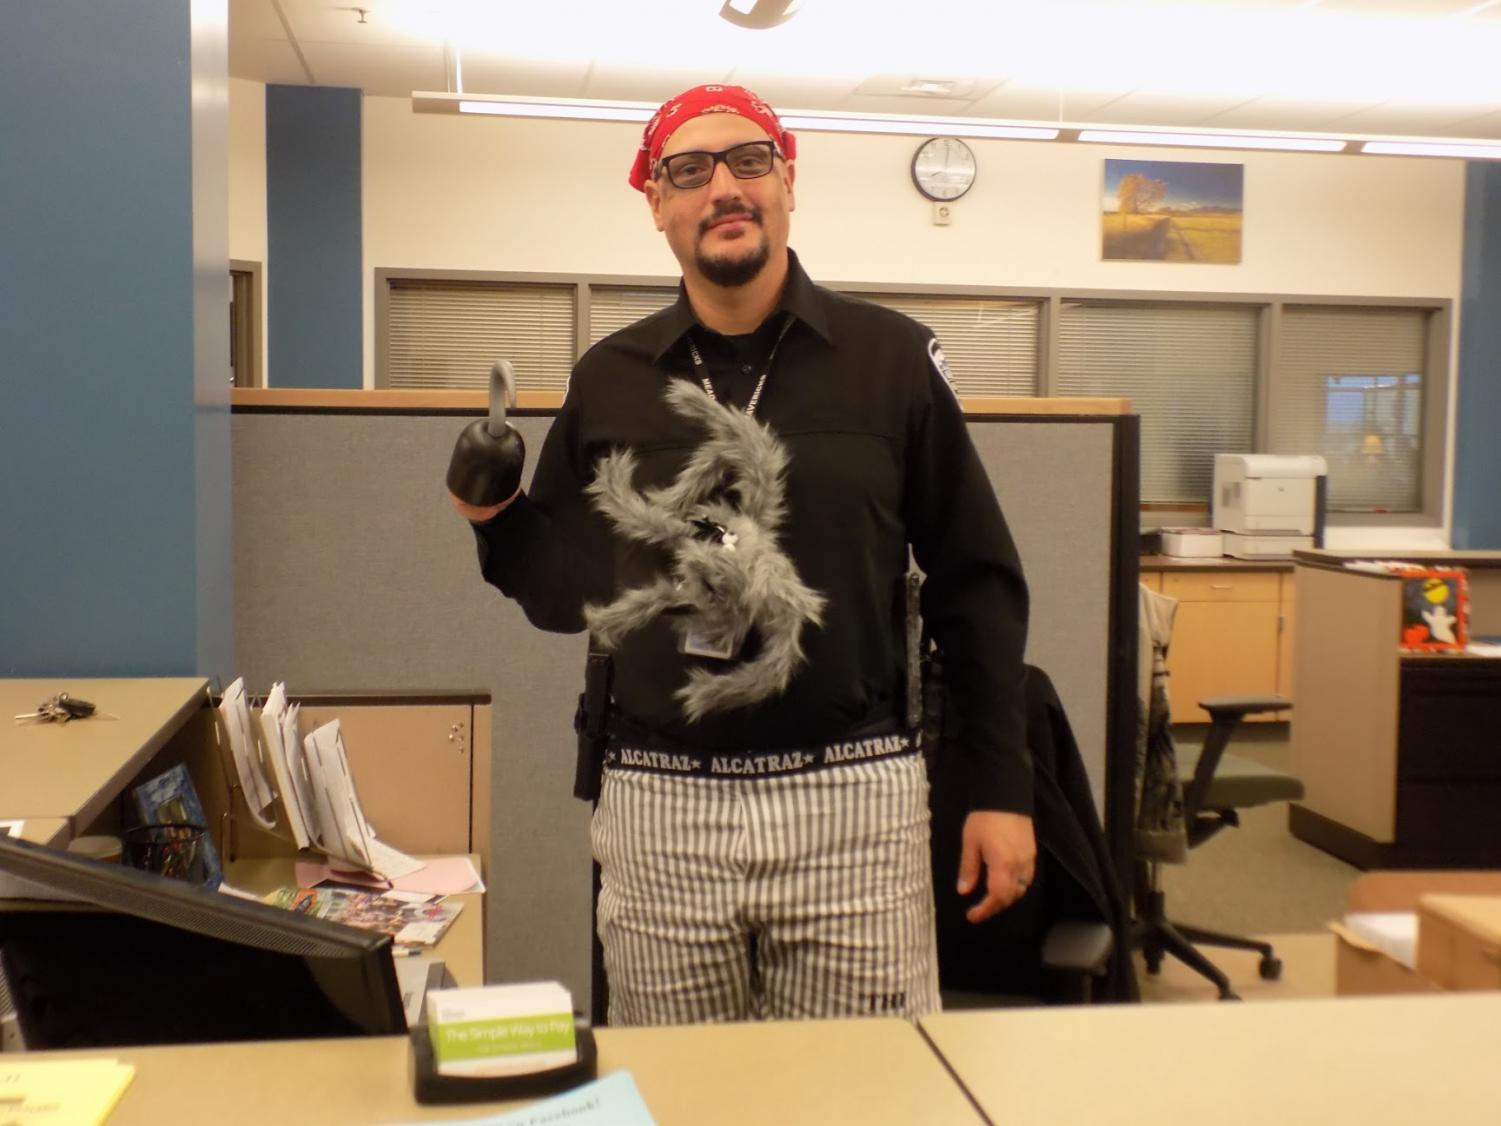 SRO Officer Ish shows off his pirate costume in the main office on Tuesday